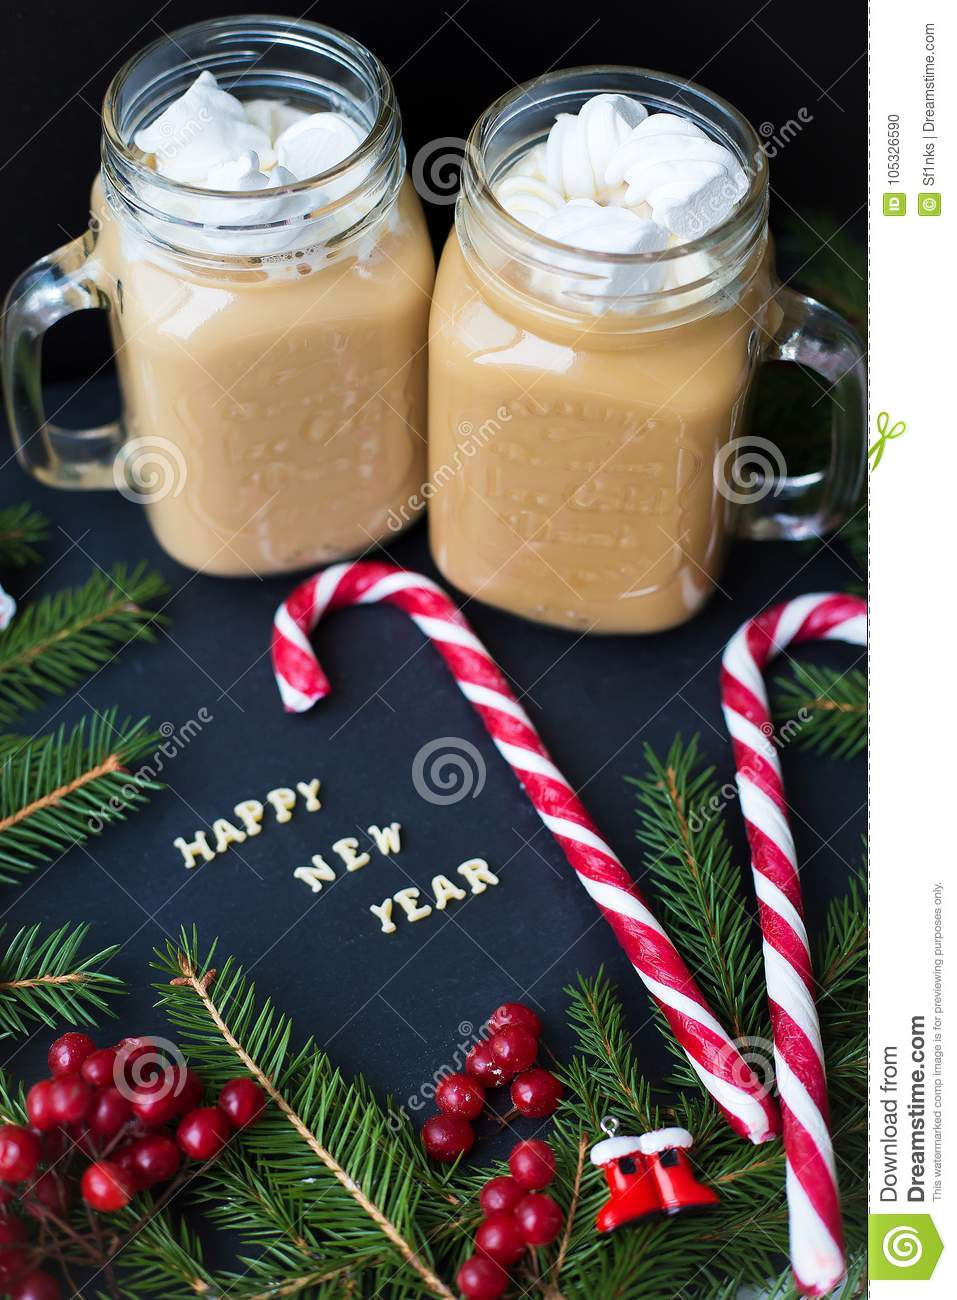 Coffee Christmas Ornaments.A Cup Of Coffee With Marshmallows Christmas Ornaments And